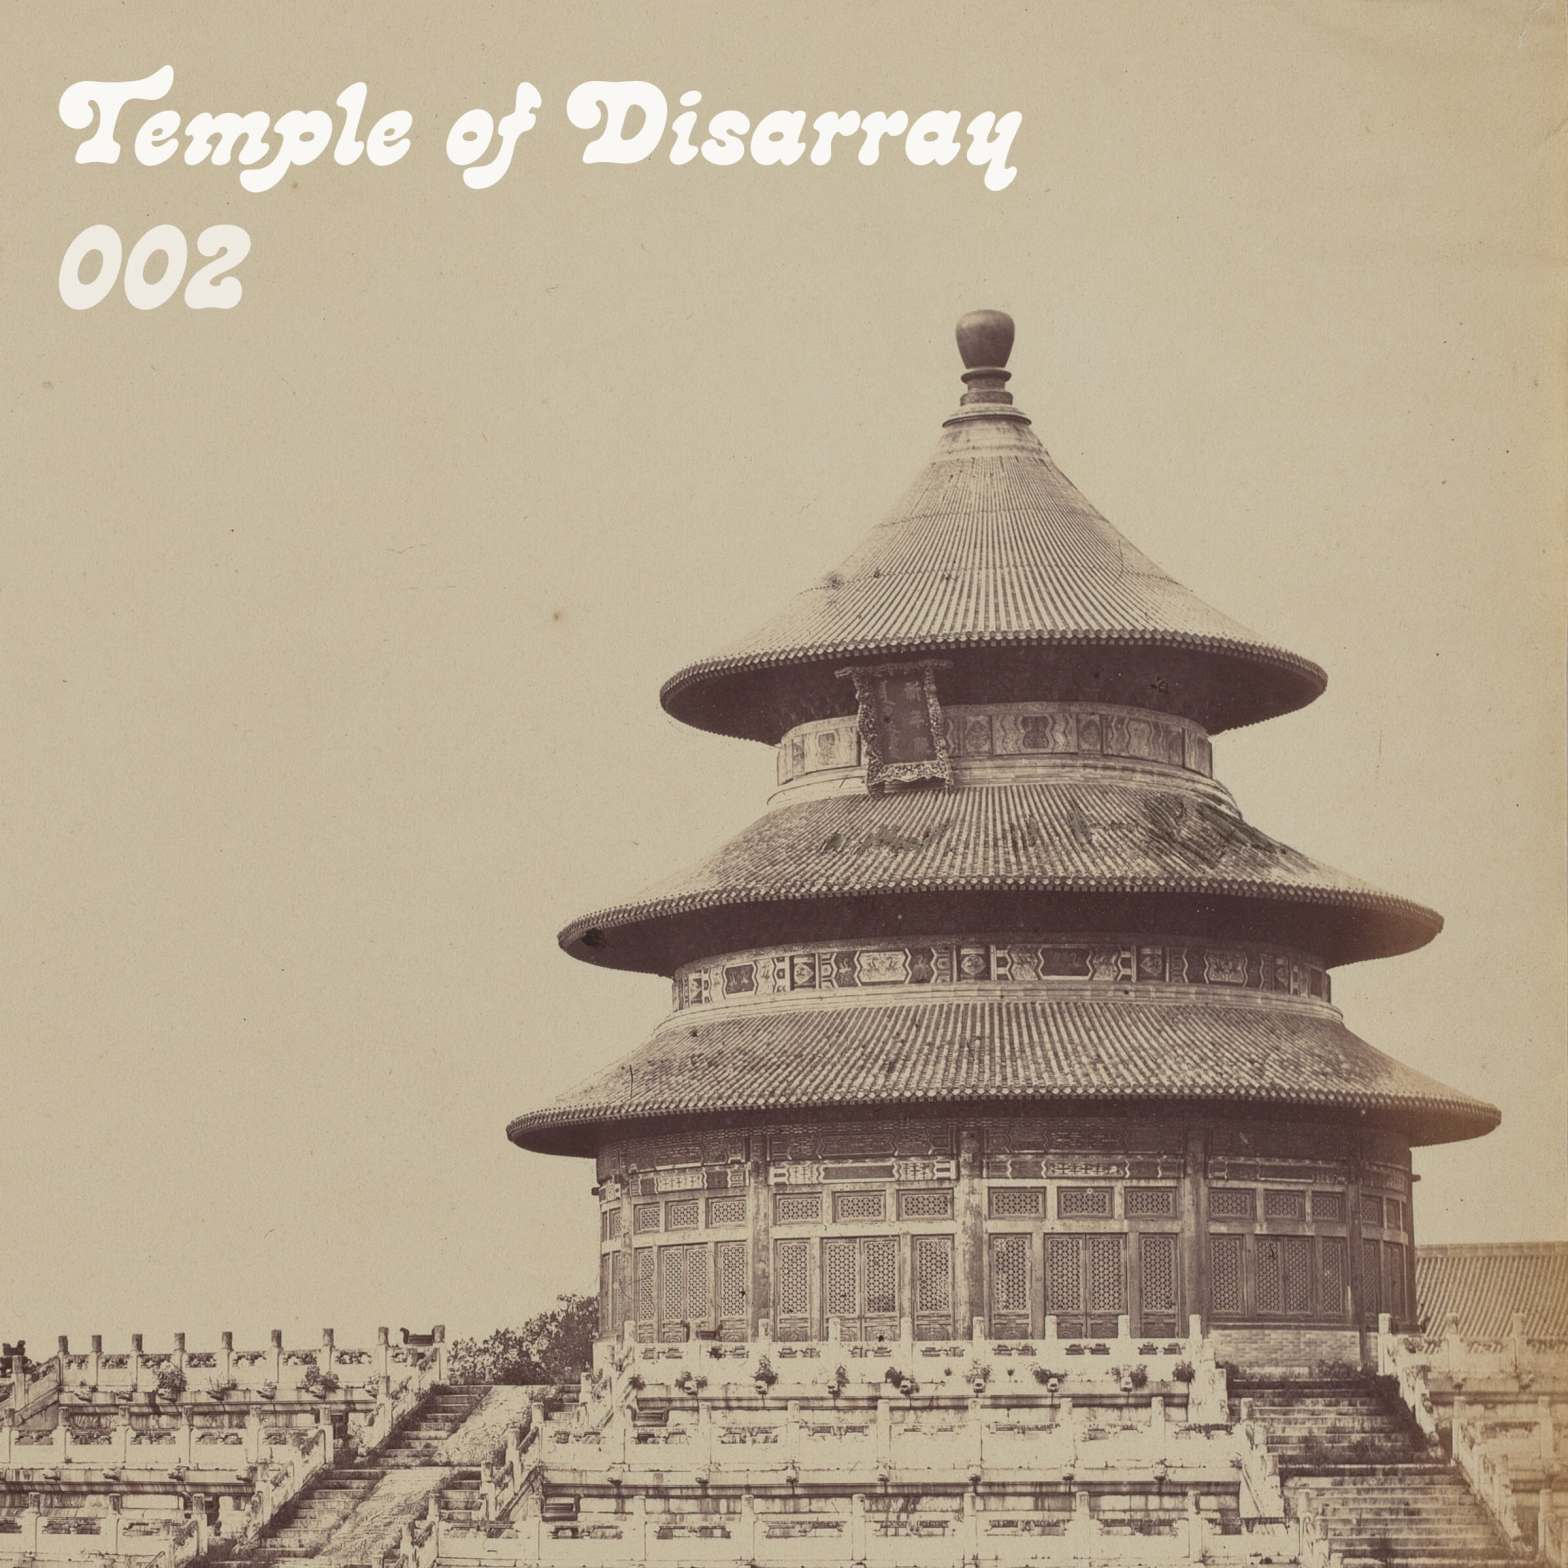 Temple of Disarray 002